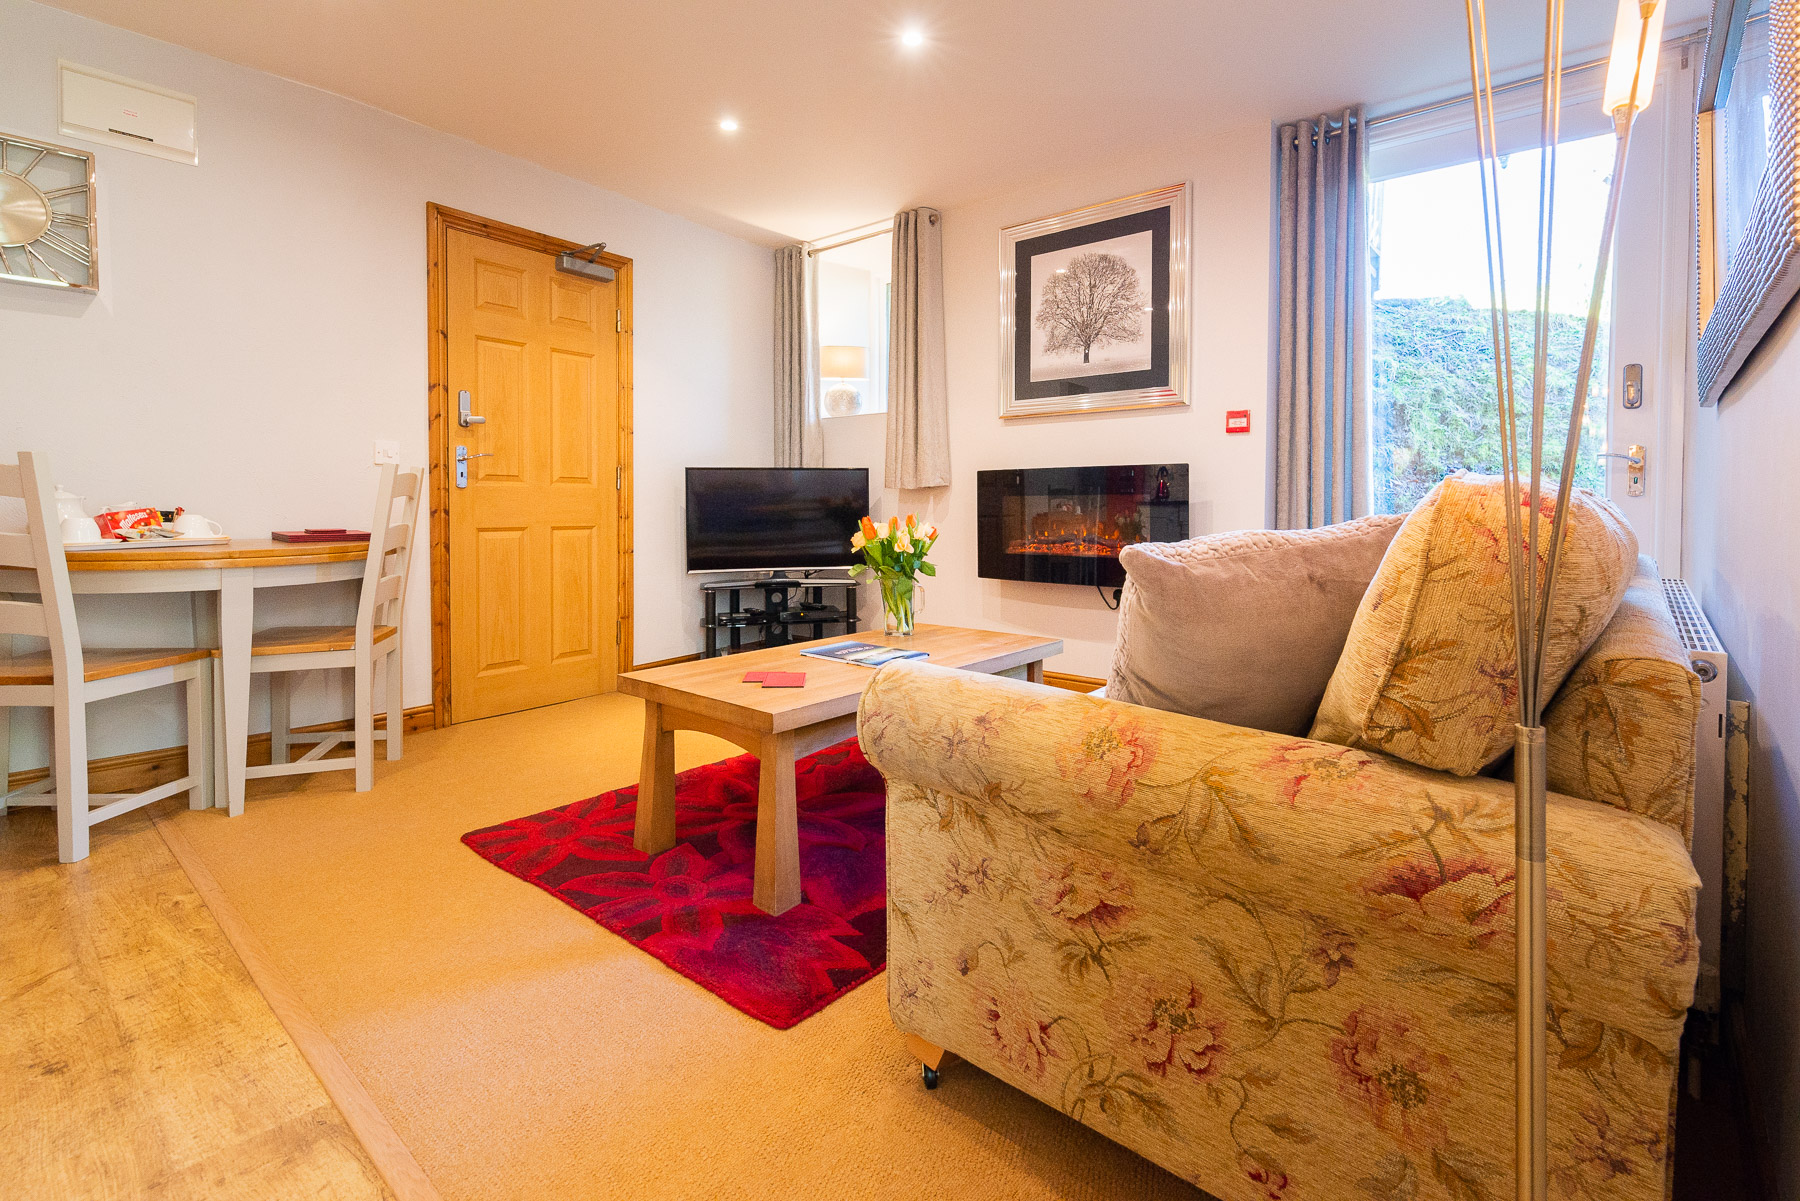 Suttons Loft Lounge. A Luxury Self catering cottage in Lancashire